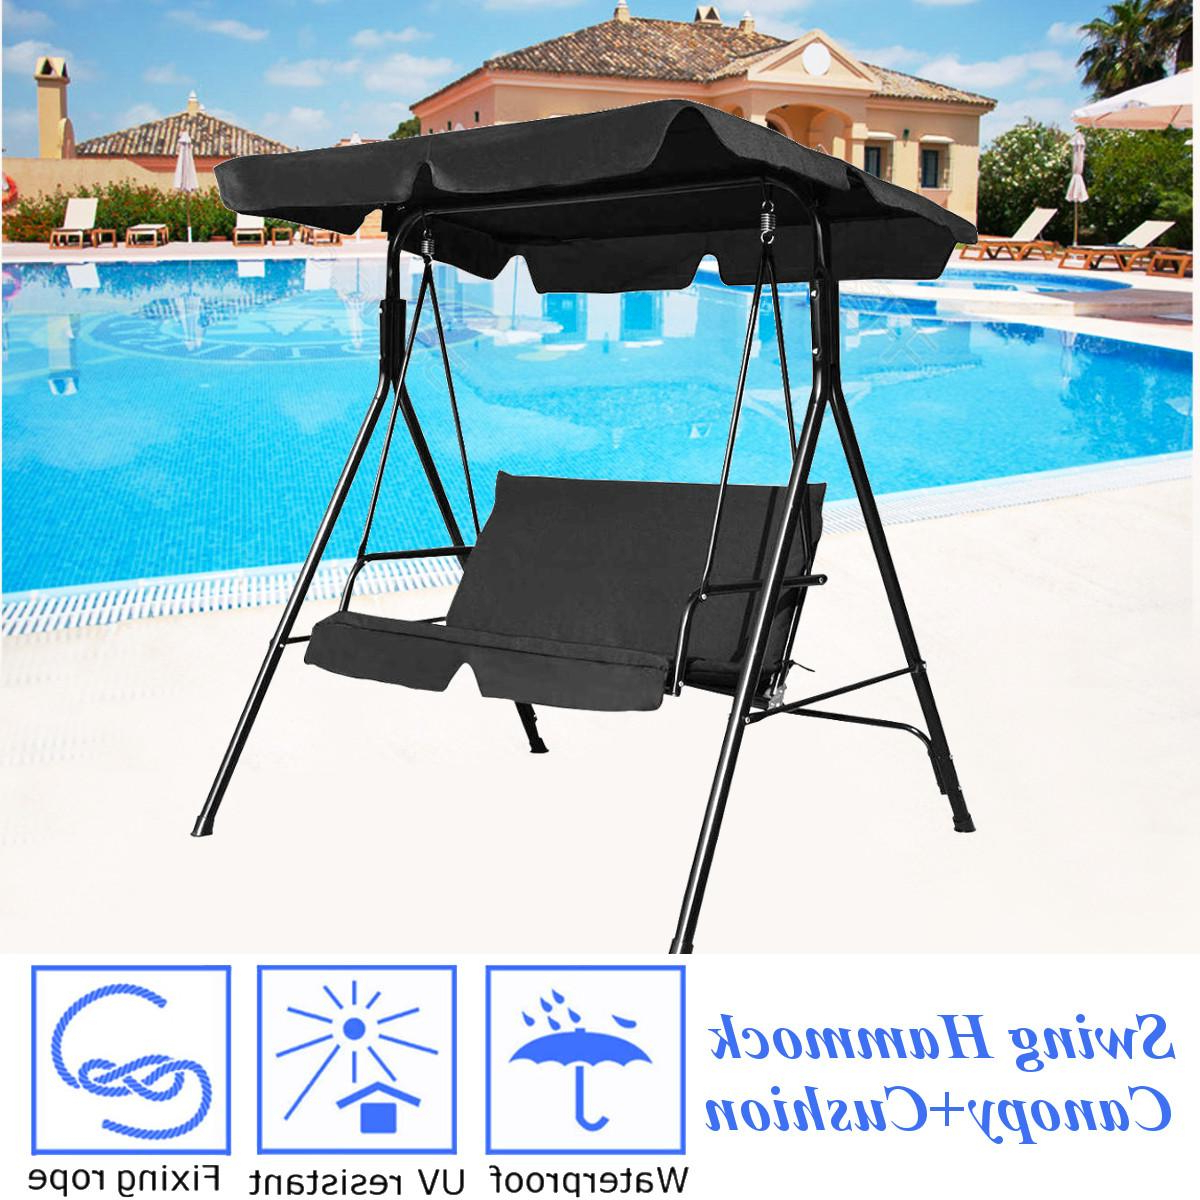 [%us $24.38 52% Off|2pcs Anti Uv Waterproof Garden Swing Chair Hammock Cover+backrest Cover Shade Sail Canopy Patio Courtyard Outdoor Tent Dustproof In With 2019 Garden Leisure Outdoor Hammock Patio Canopy Rocking Chairs|garden Leisure Outdoor Hammock Patio Canopy Rocking Chairs Regarding Famous Us $24.38 52% Off|2pcs Anti Uv Waterproof Garden Swing Chair Hammock Cover+backrest Cover Shade Sail Canopy Patio Courtyard Outdoor Tent Dustproof In|well Known Garden Leisure Outdoor Hammock Patio Canopy Rocking Chairs In Us $24.38 52% Off|2pcs Anti Uv Waterproof Garden Swing Chair Hammock Cover+backrest Cover Shade Sail Canopy Patio Courtyard Outdoor Tent Dustproof In|most Recently Released Us $ (View 24 of 30)